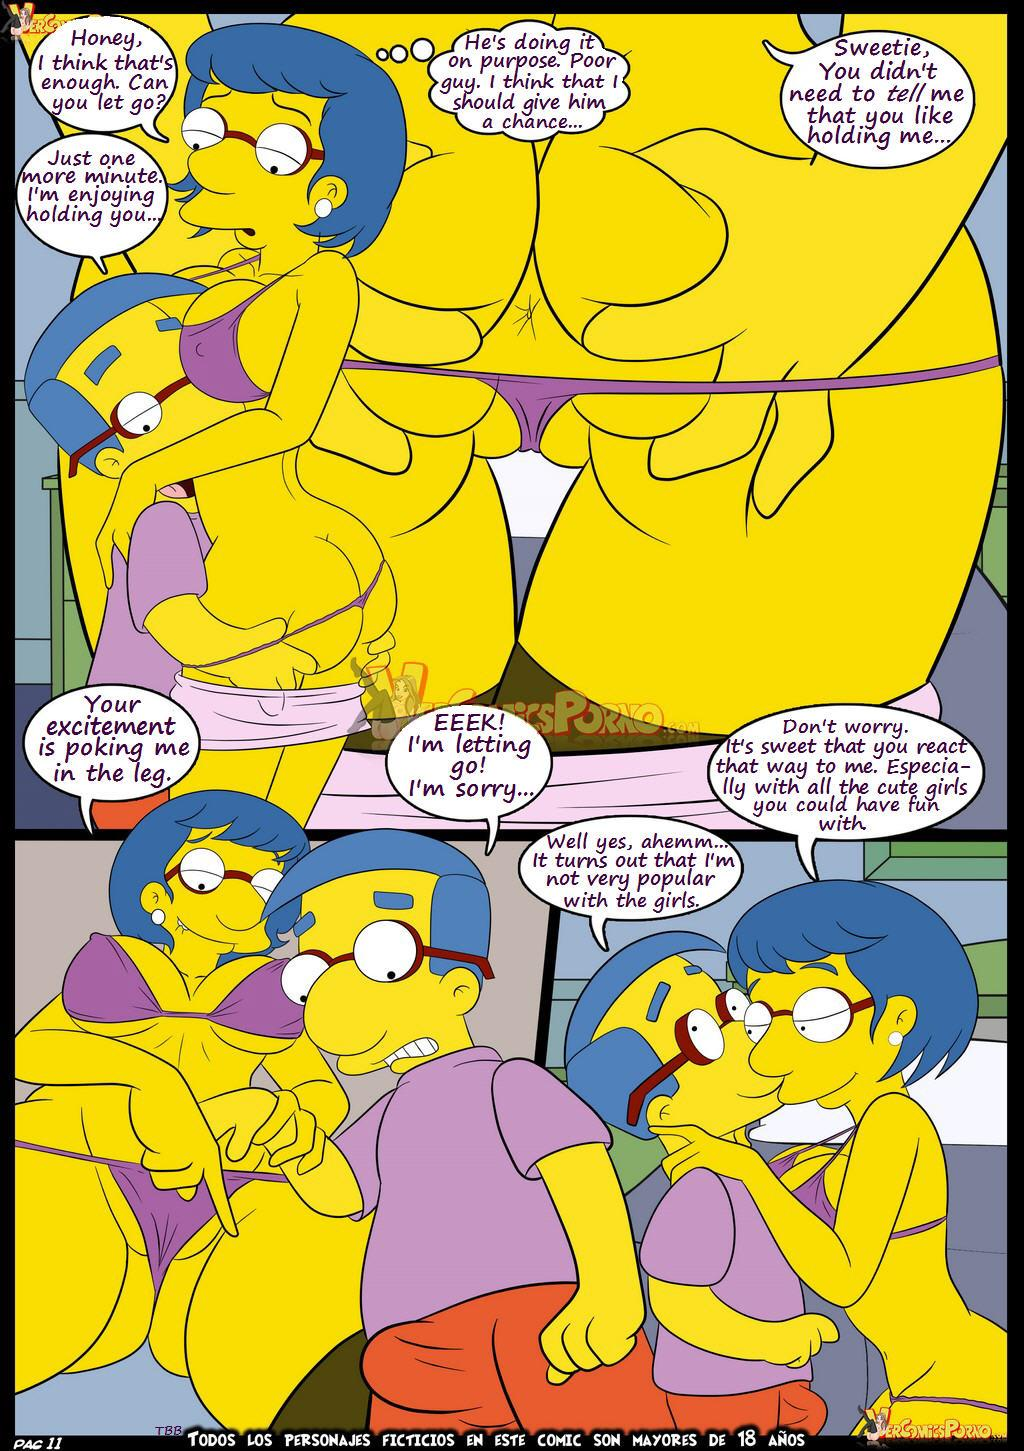 12 40 - The Simpsons. Part 6.